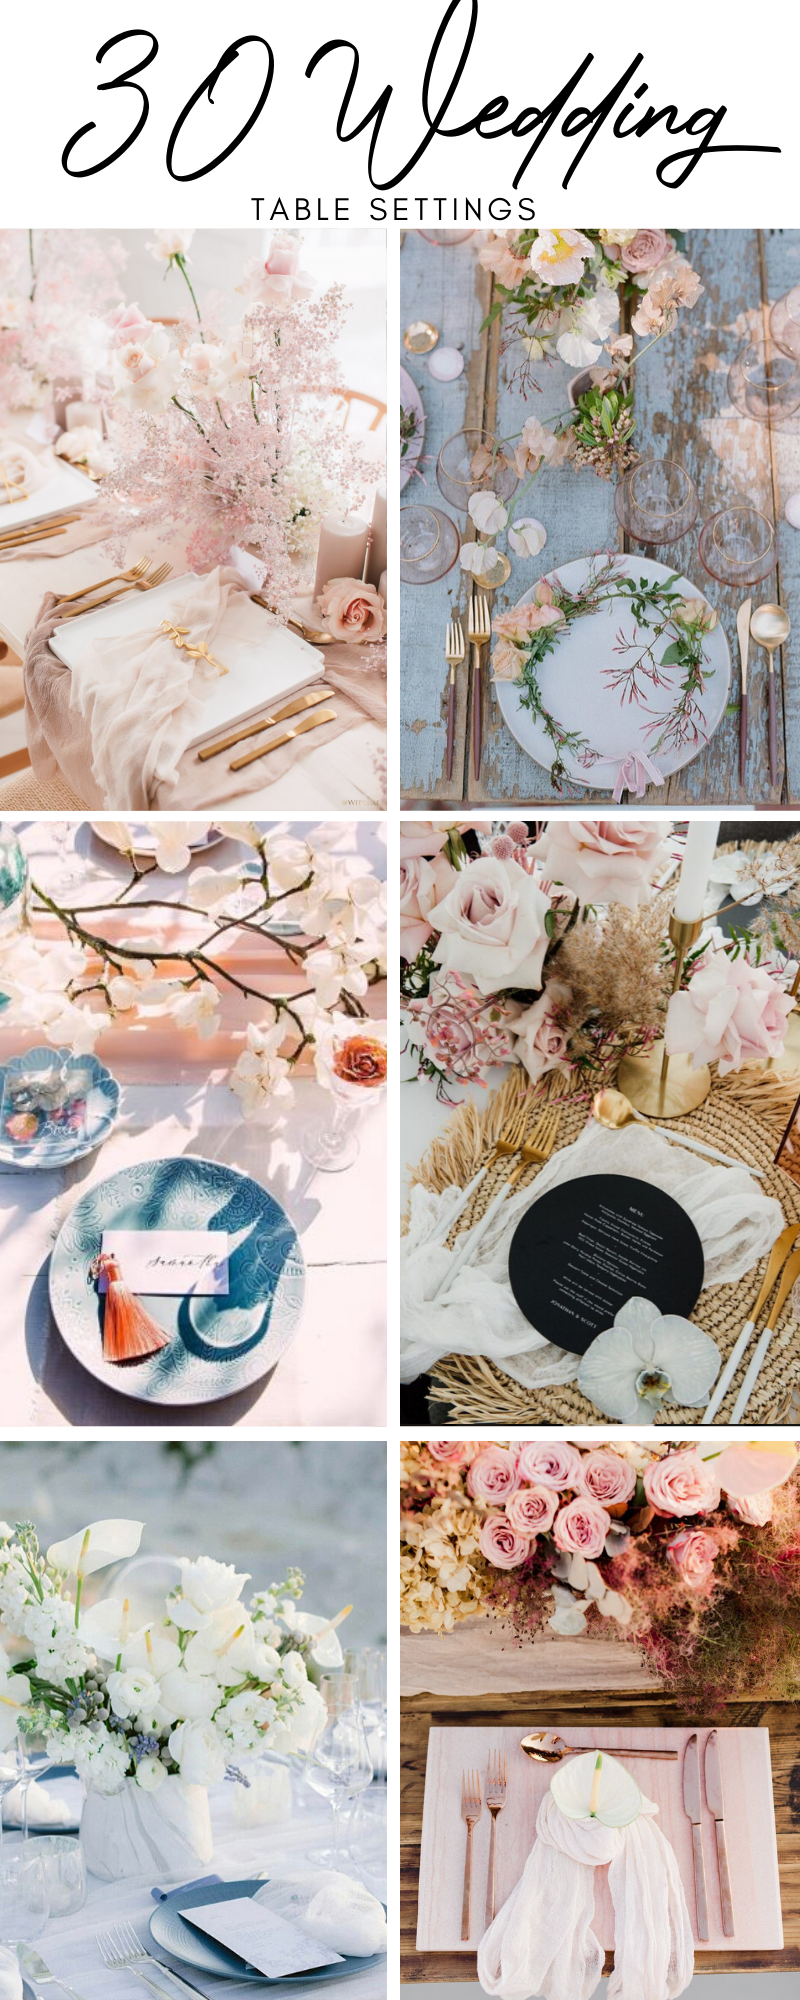 30 Wedding Table Settings